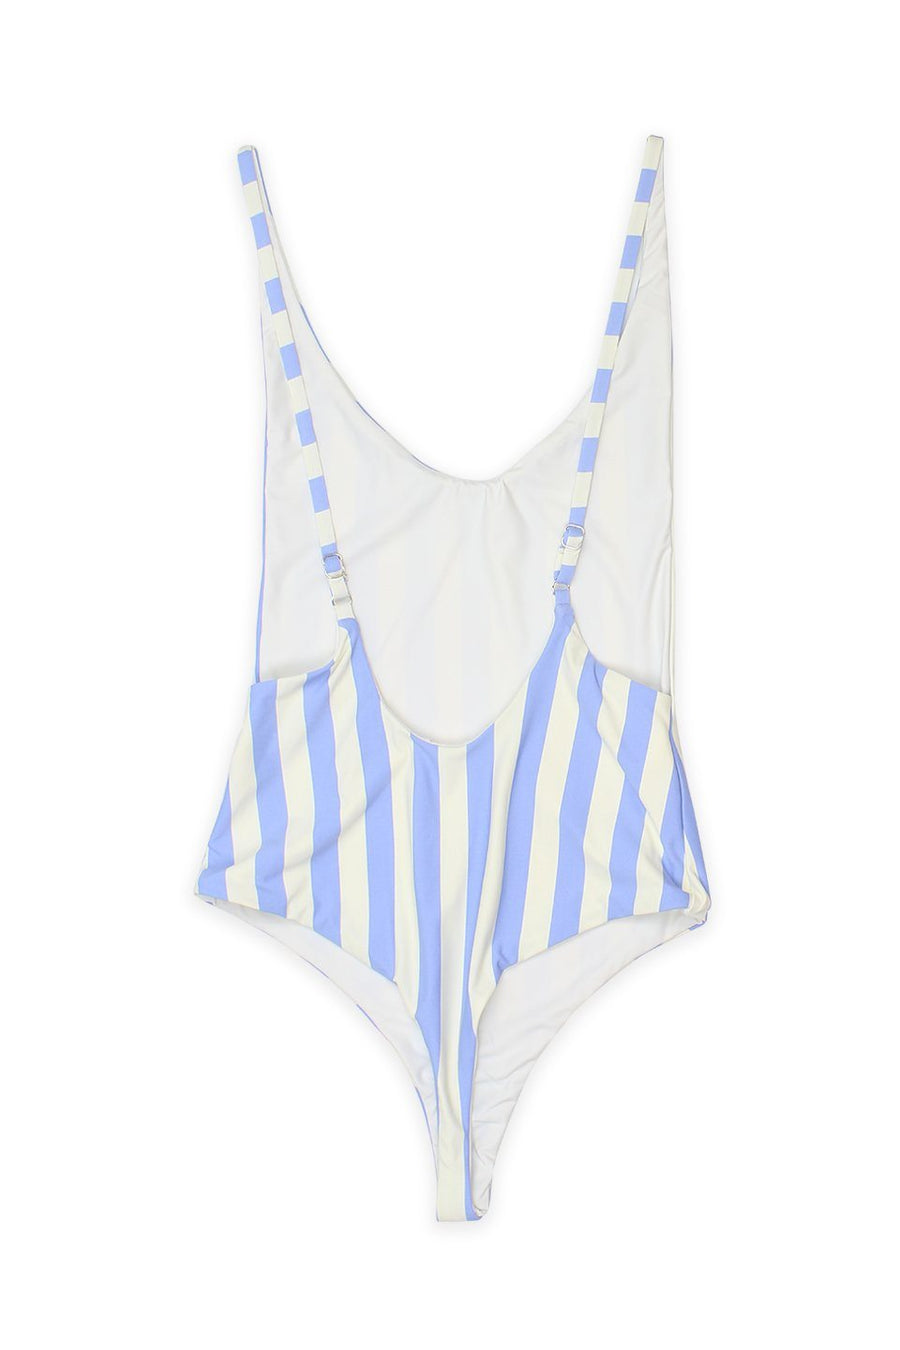 LOW BACK THONG ONE PIECE - SKY BEACH STRIPES - Front - Dippin' Daisy's